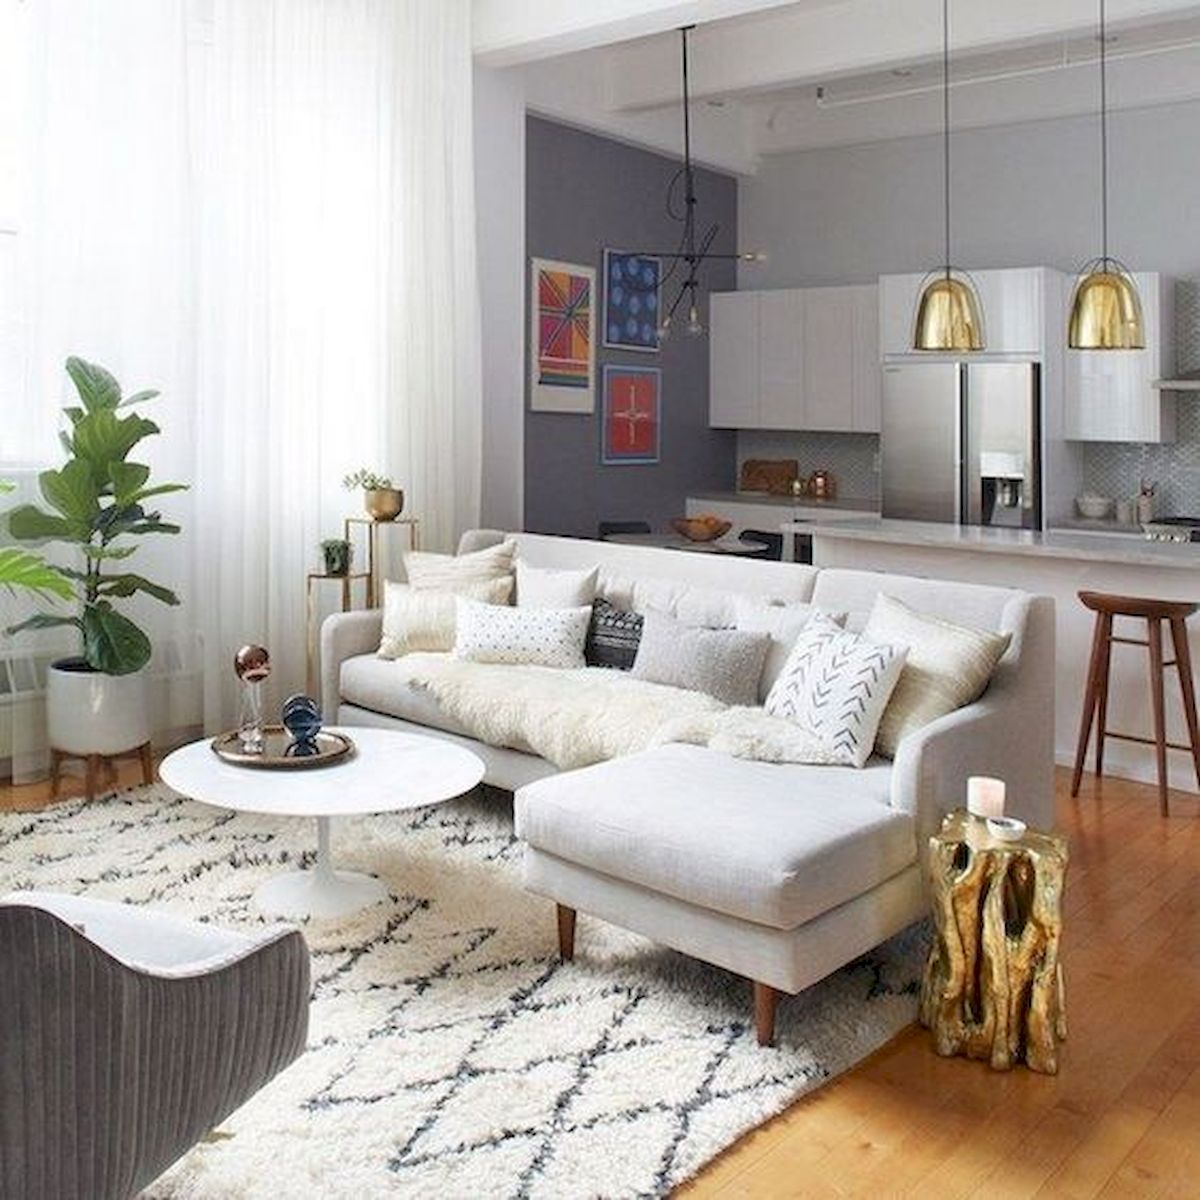 57 Cozy Living Room Apartment Decor Ideas - Googodecor